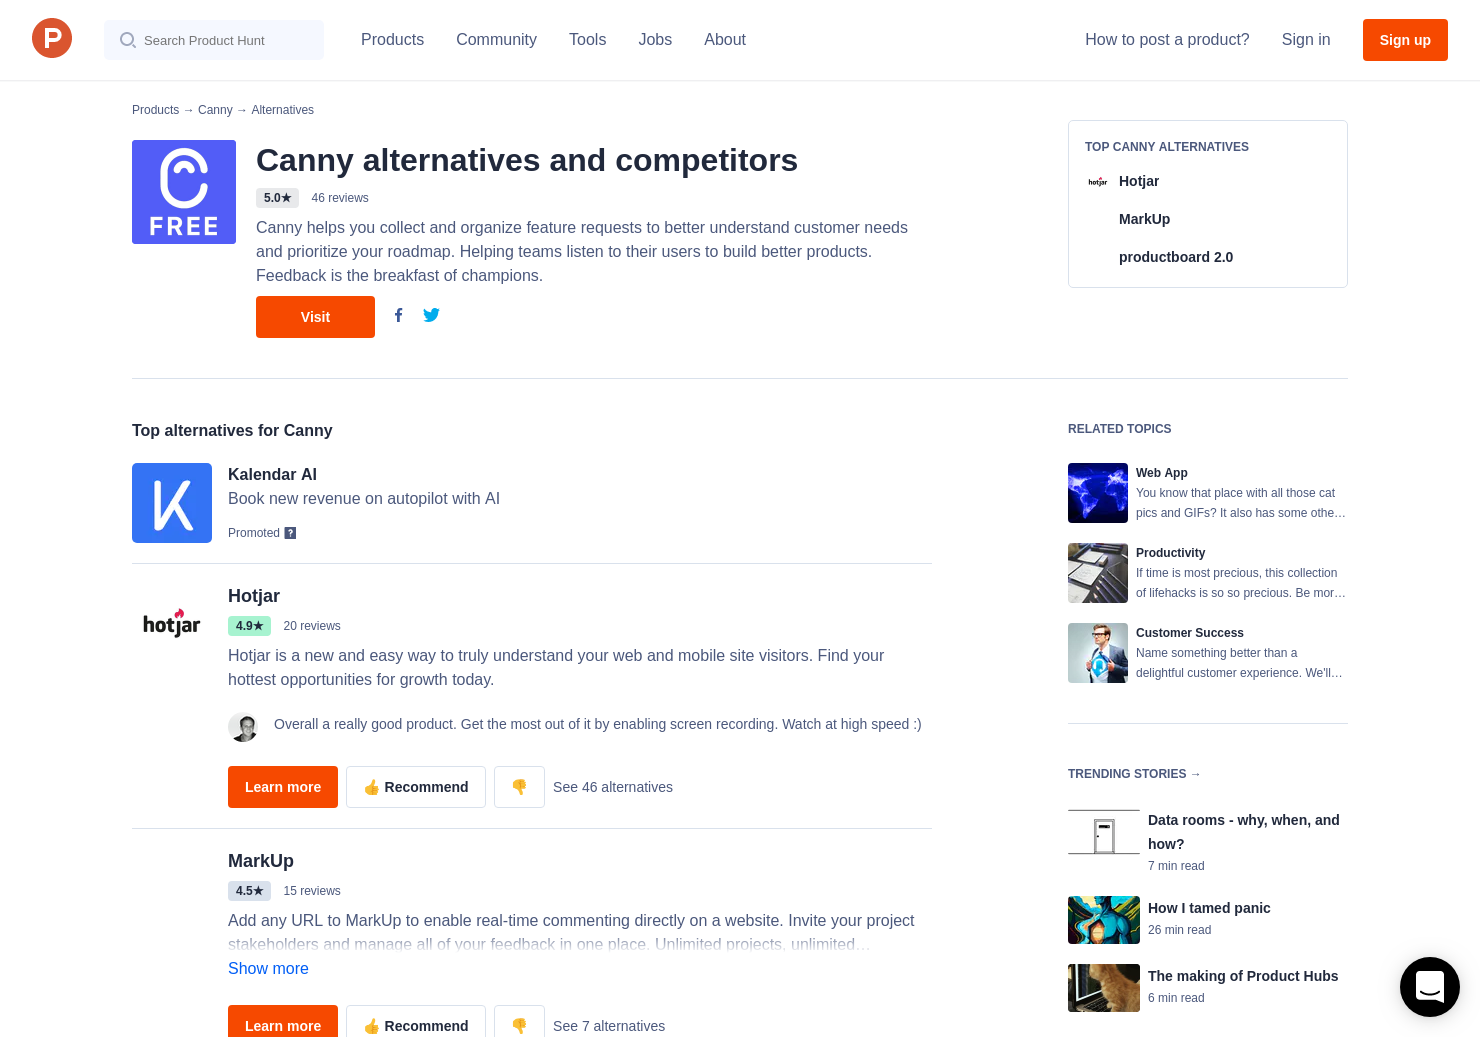 12 Alternatives to Canny | Product Hunt